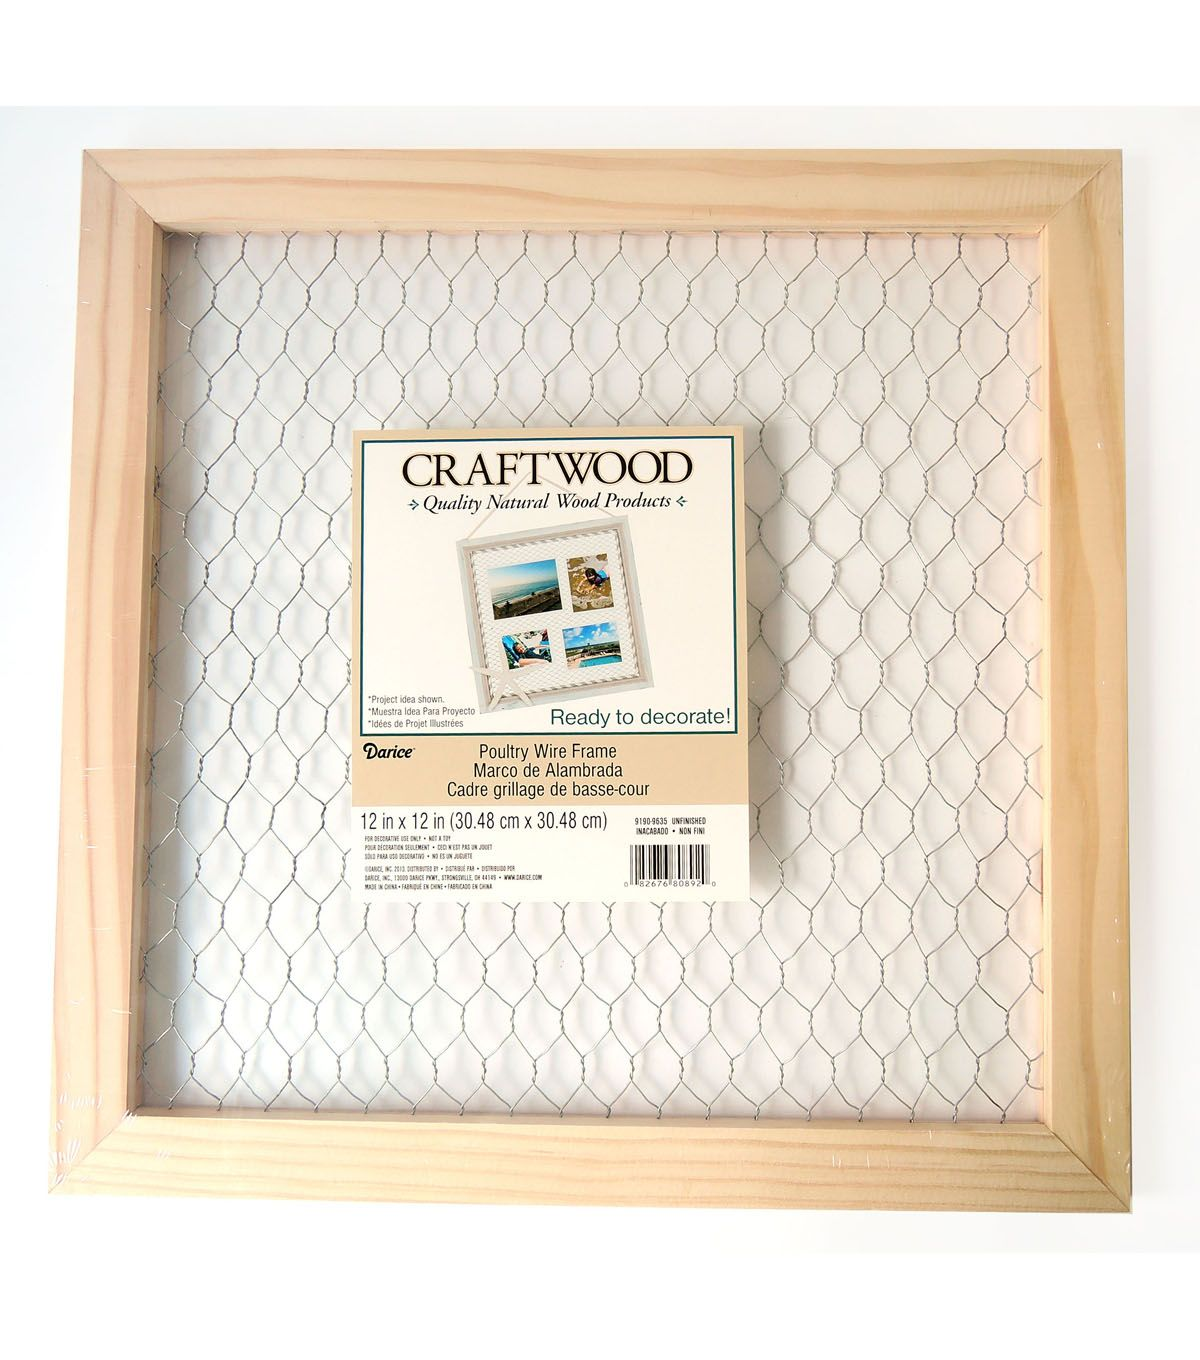 Darice Craftwood 12 X12 Unfinished Chicken Wire Square Frame